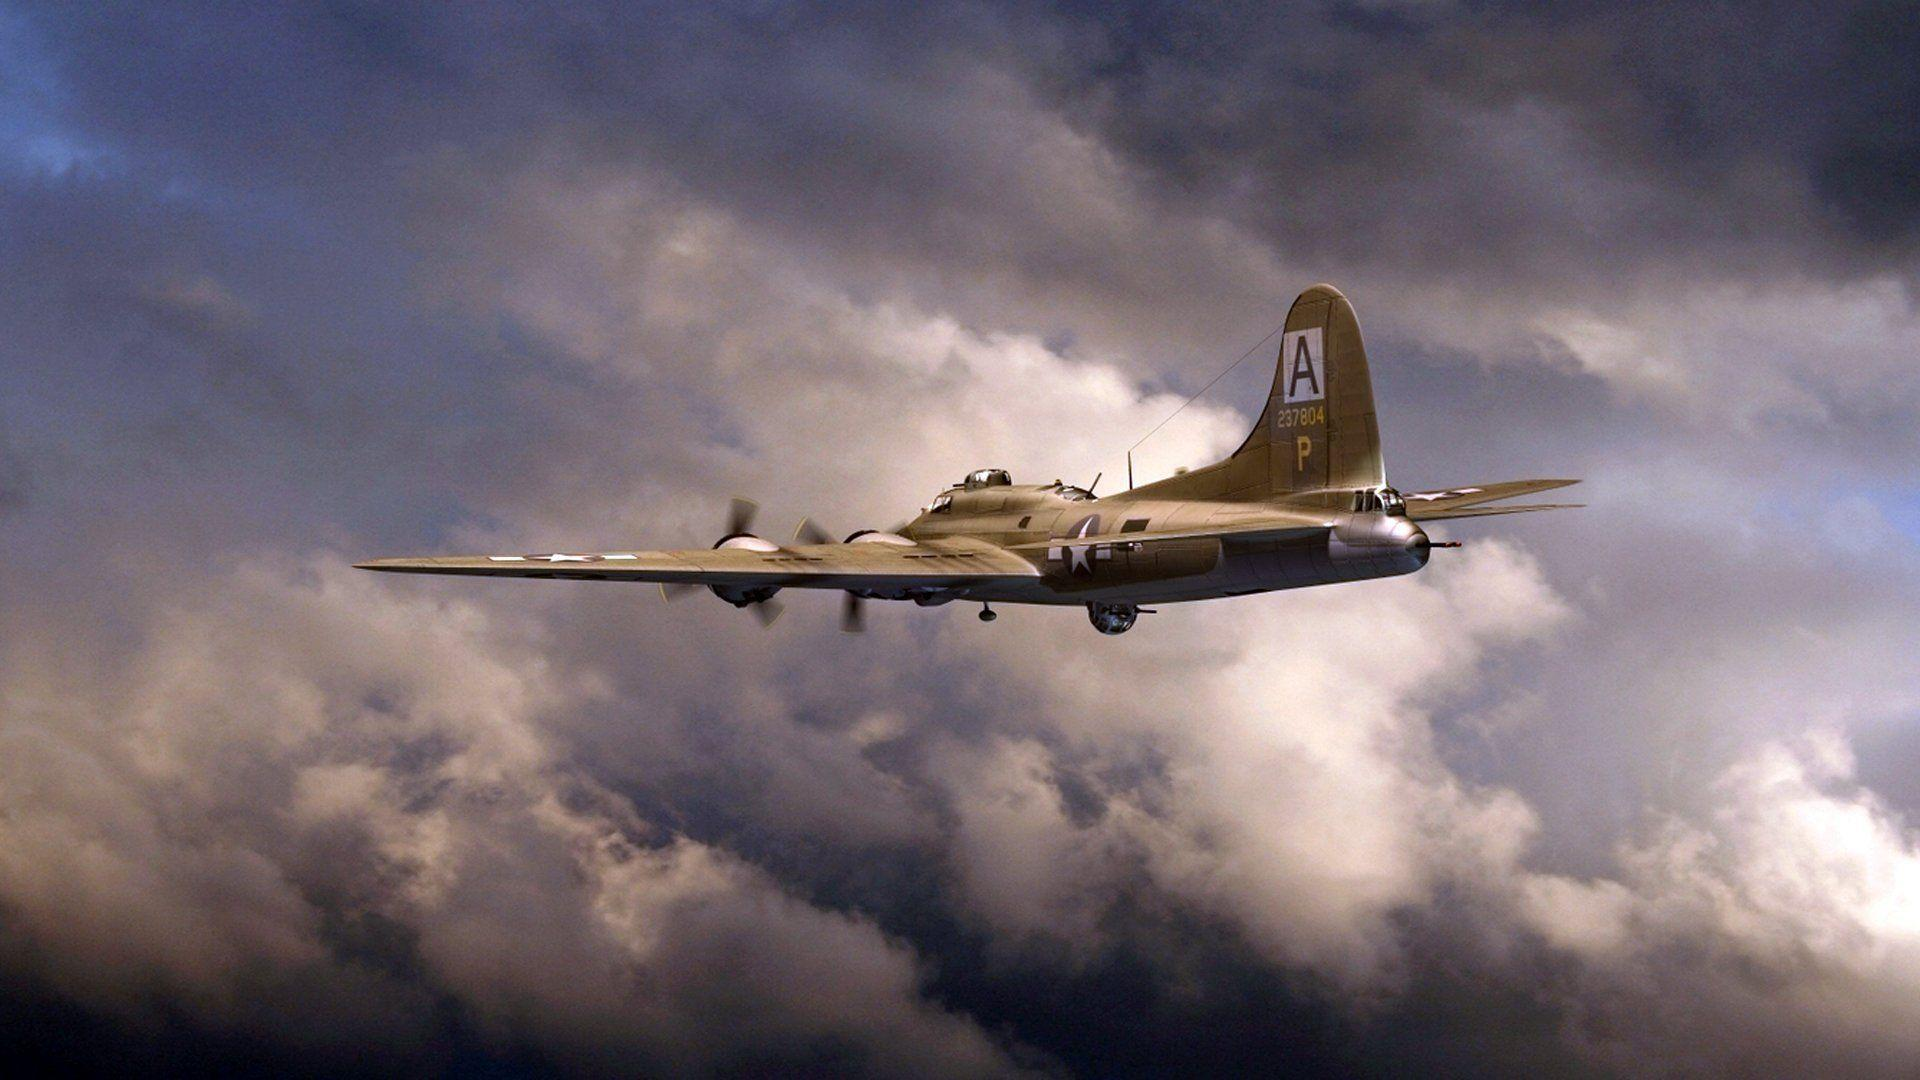 B 17 Flying Fortress Wallpaper 73 images  Get the Best